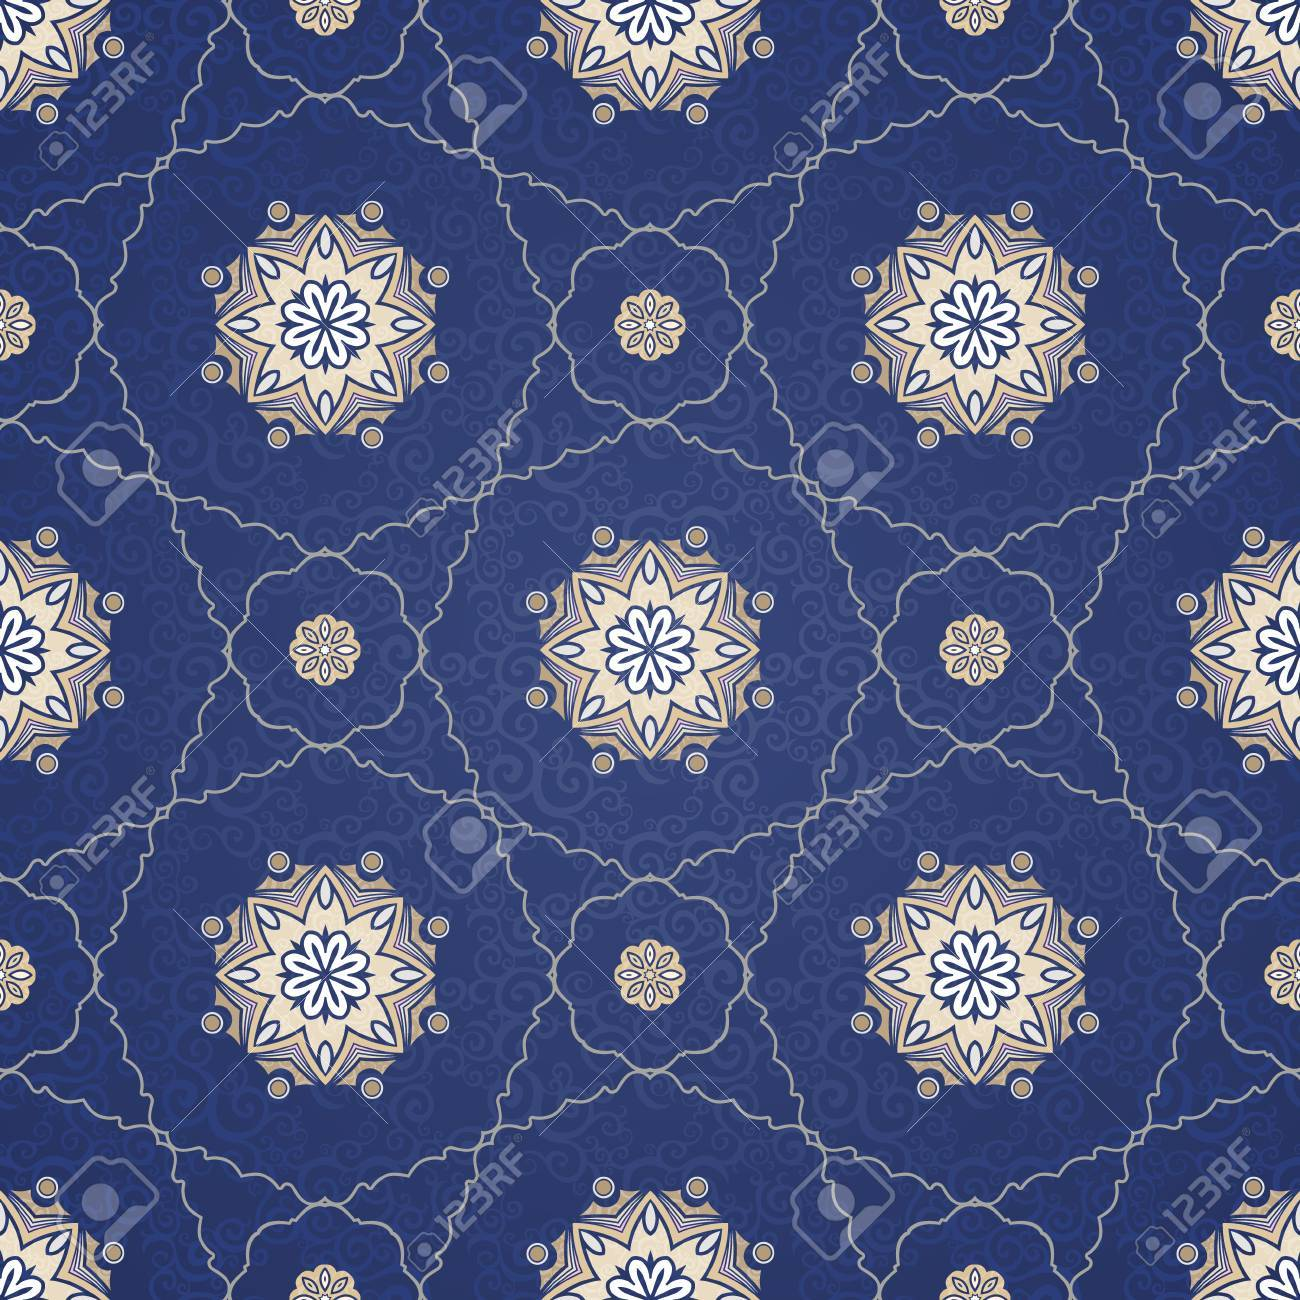 Vintage Element For Design In Eastern Style Ornamental Blue Tracery Ornate Floral Decor Wallpaper Endless Texture Delicate Pattern Fill